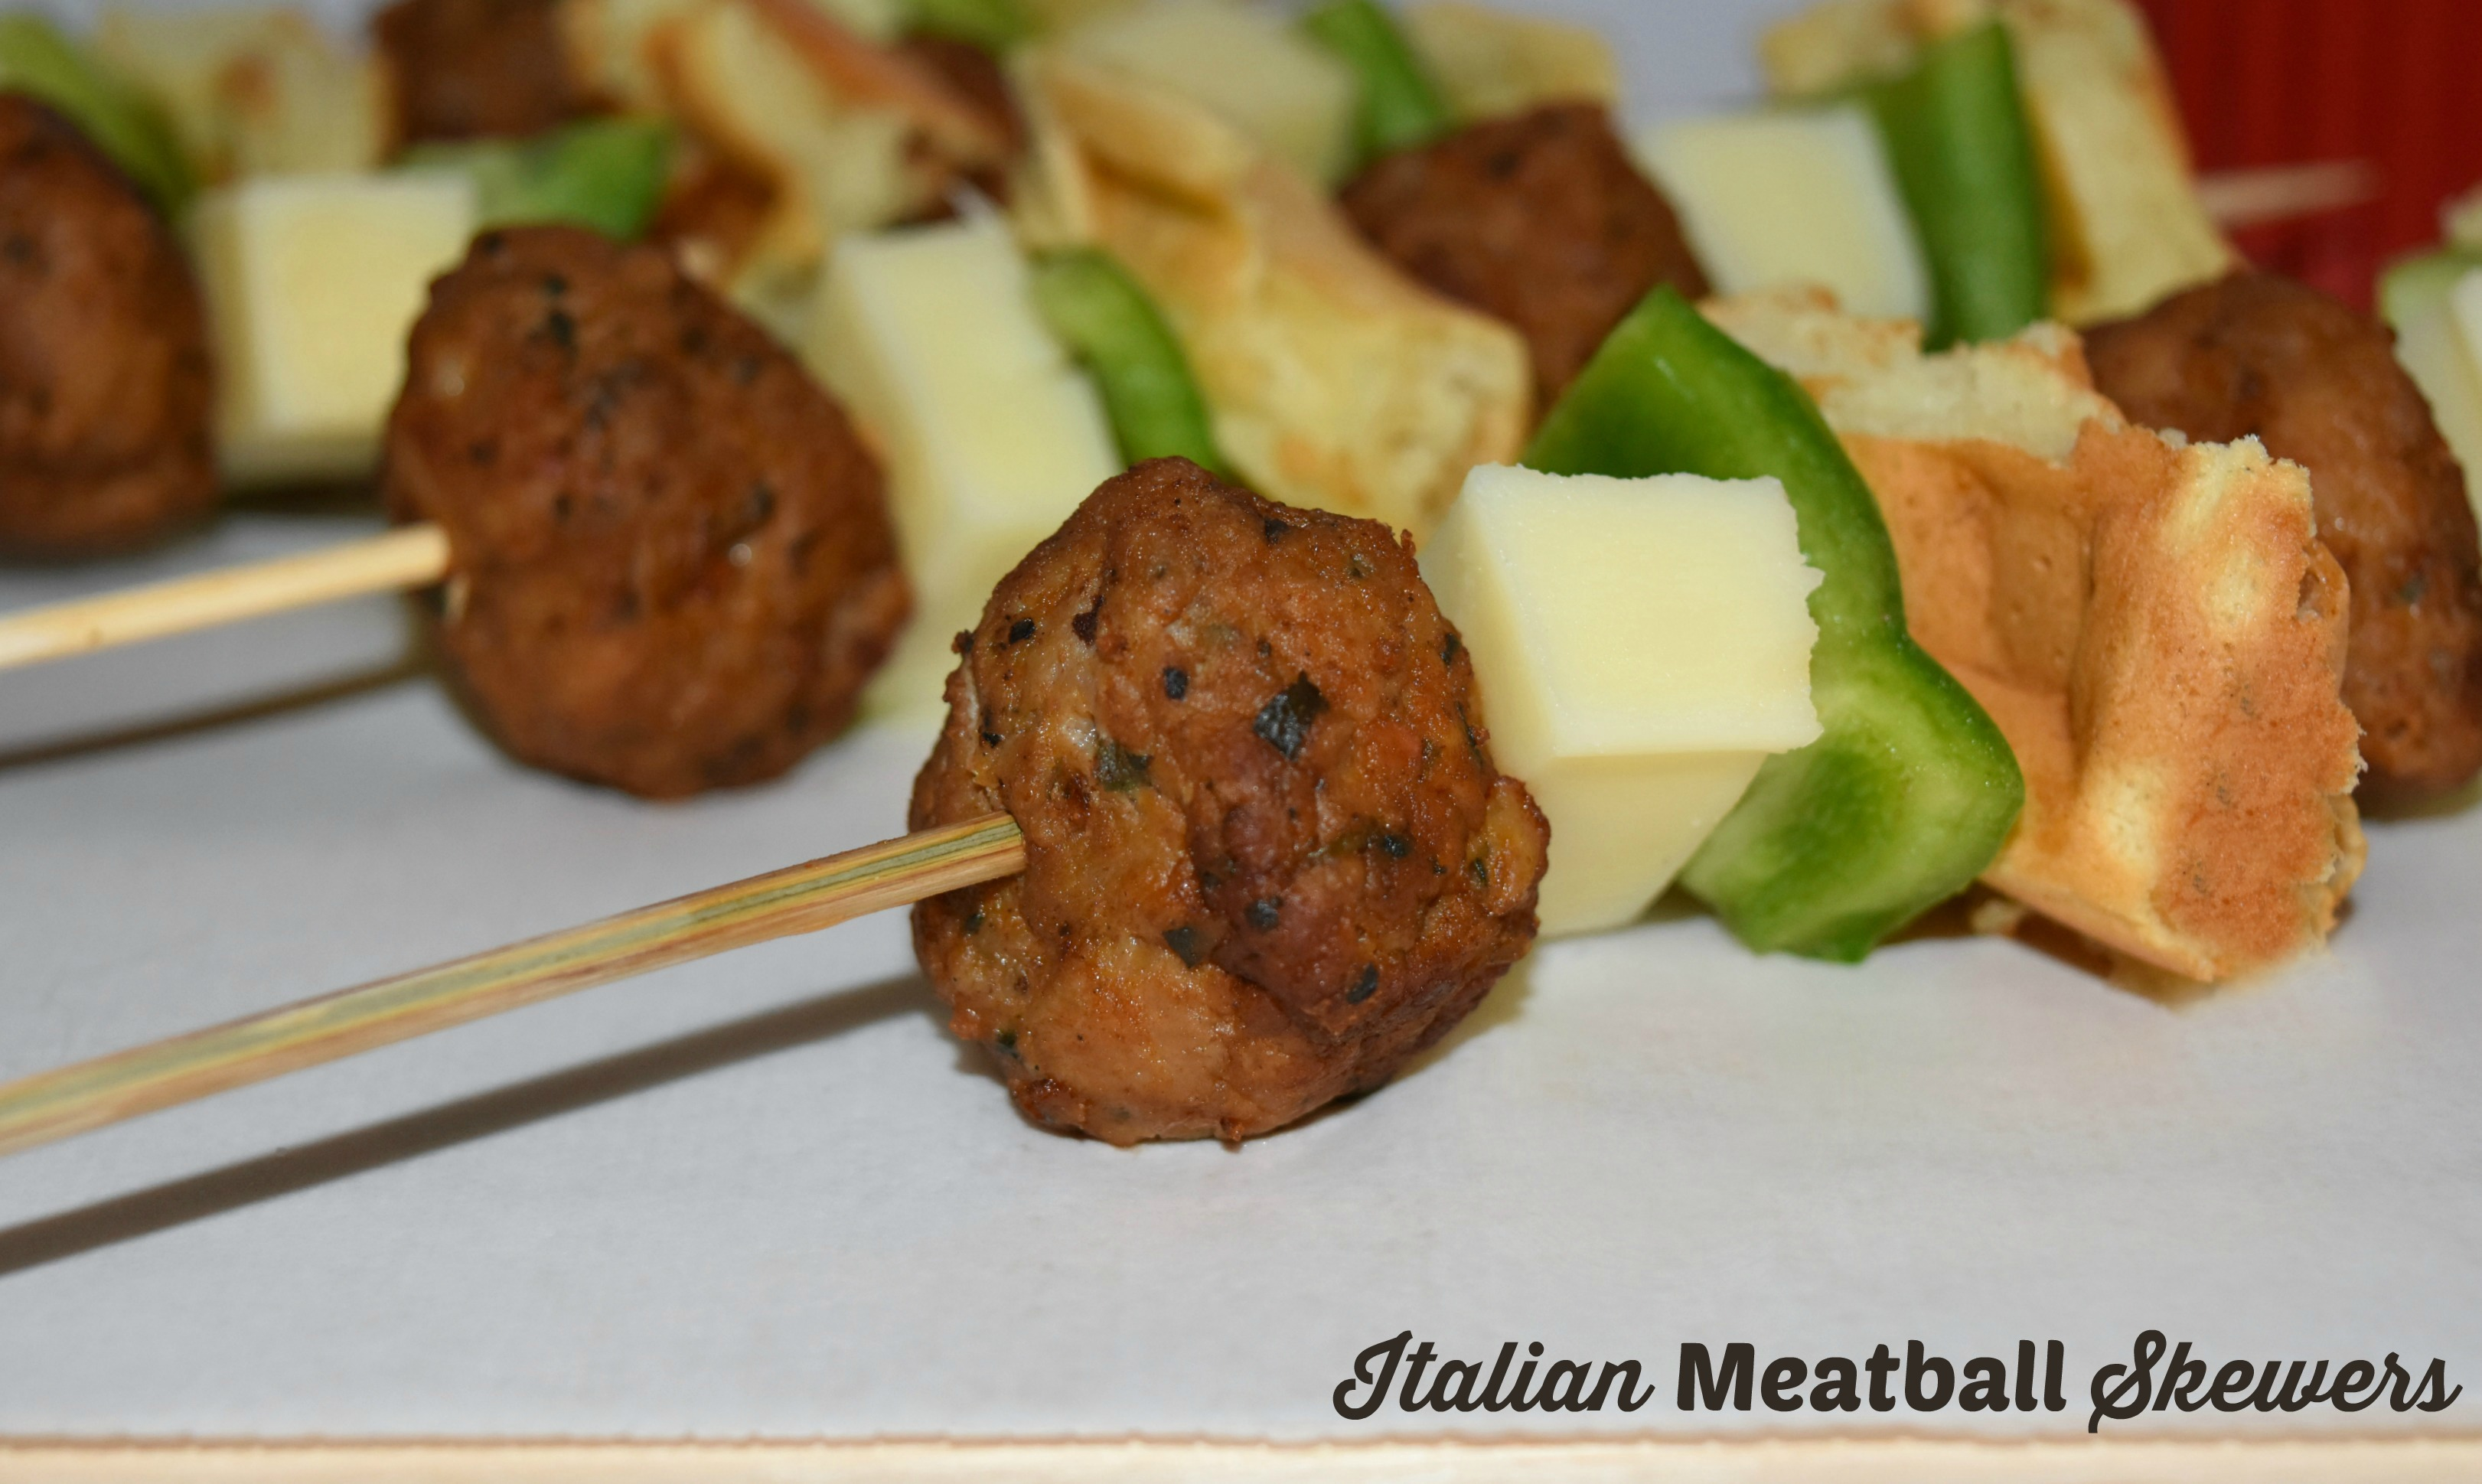 meatball skewer hero